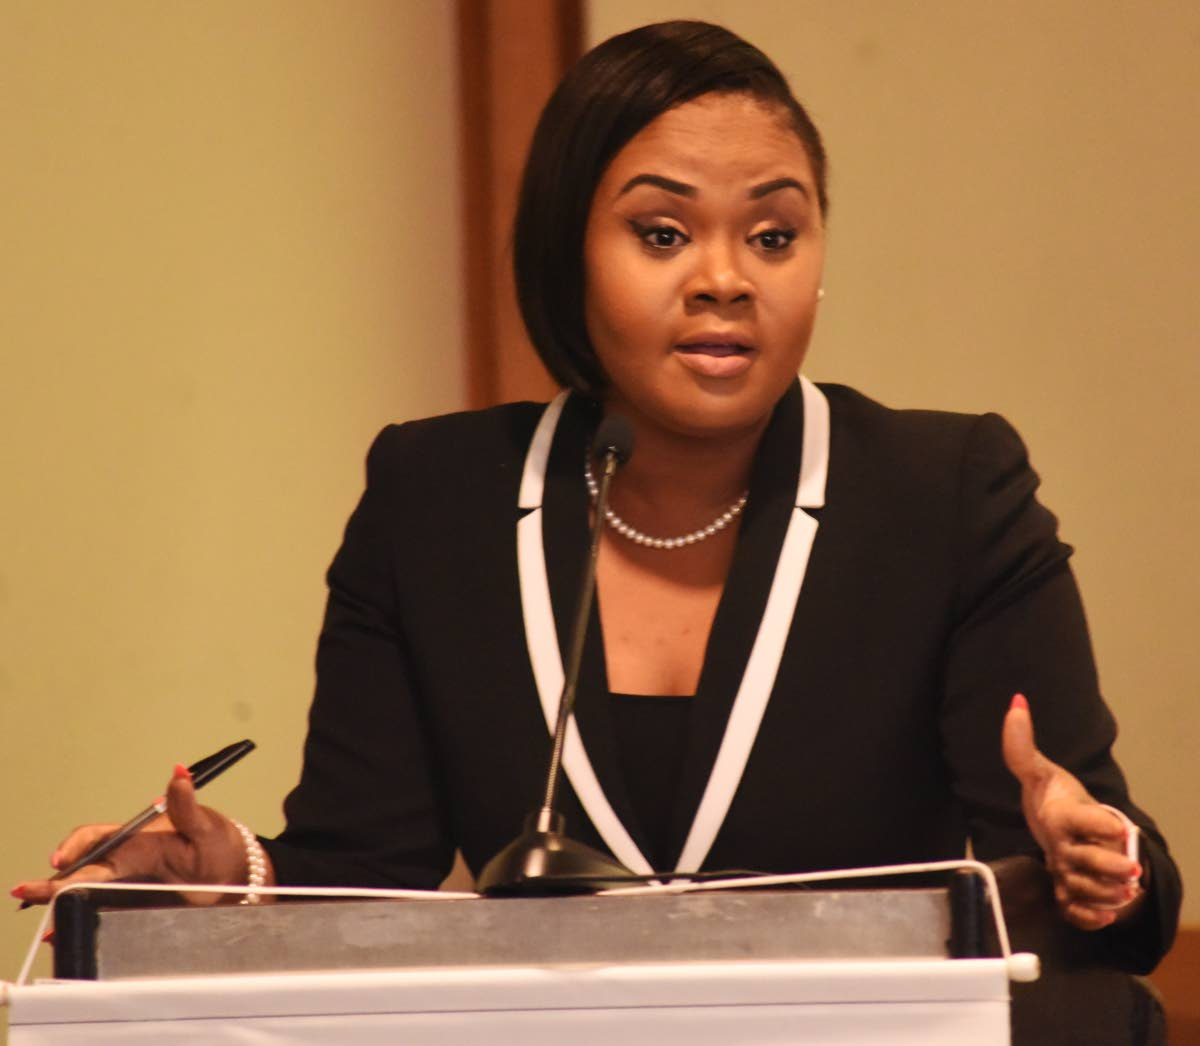 Minister of Sport and Youth Affairs Shamfa Cudjoe addresses the media during Venture Credit Union's 2019 Run + Fun Walk press conference at Hilton St Anns, yesterday.